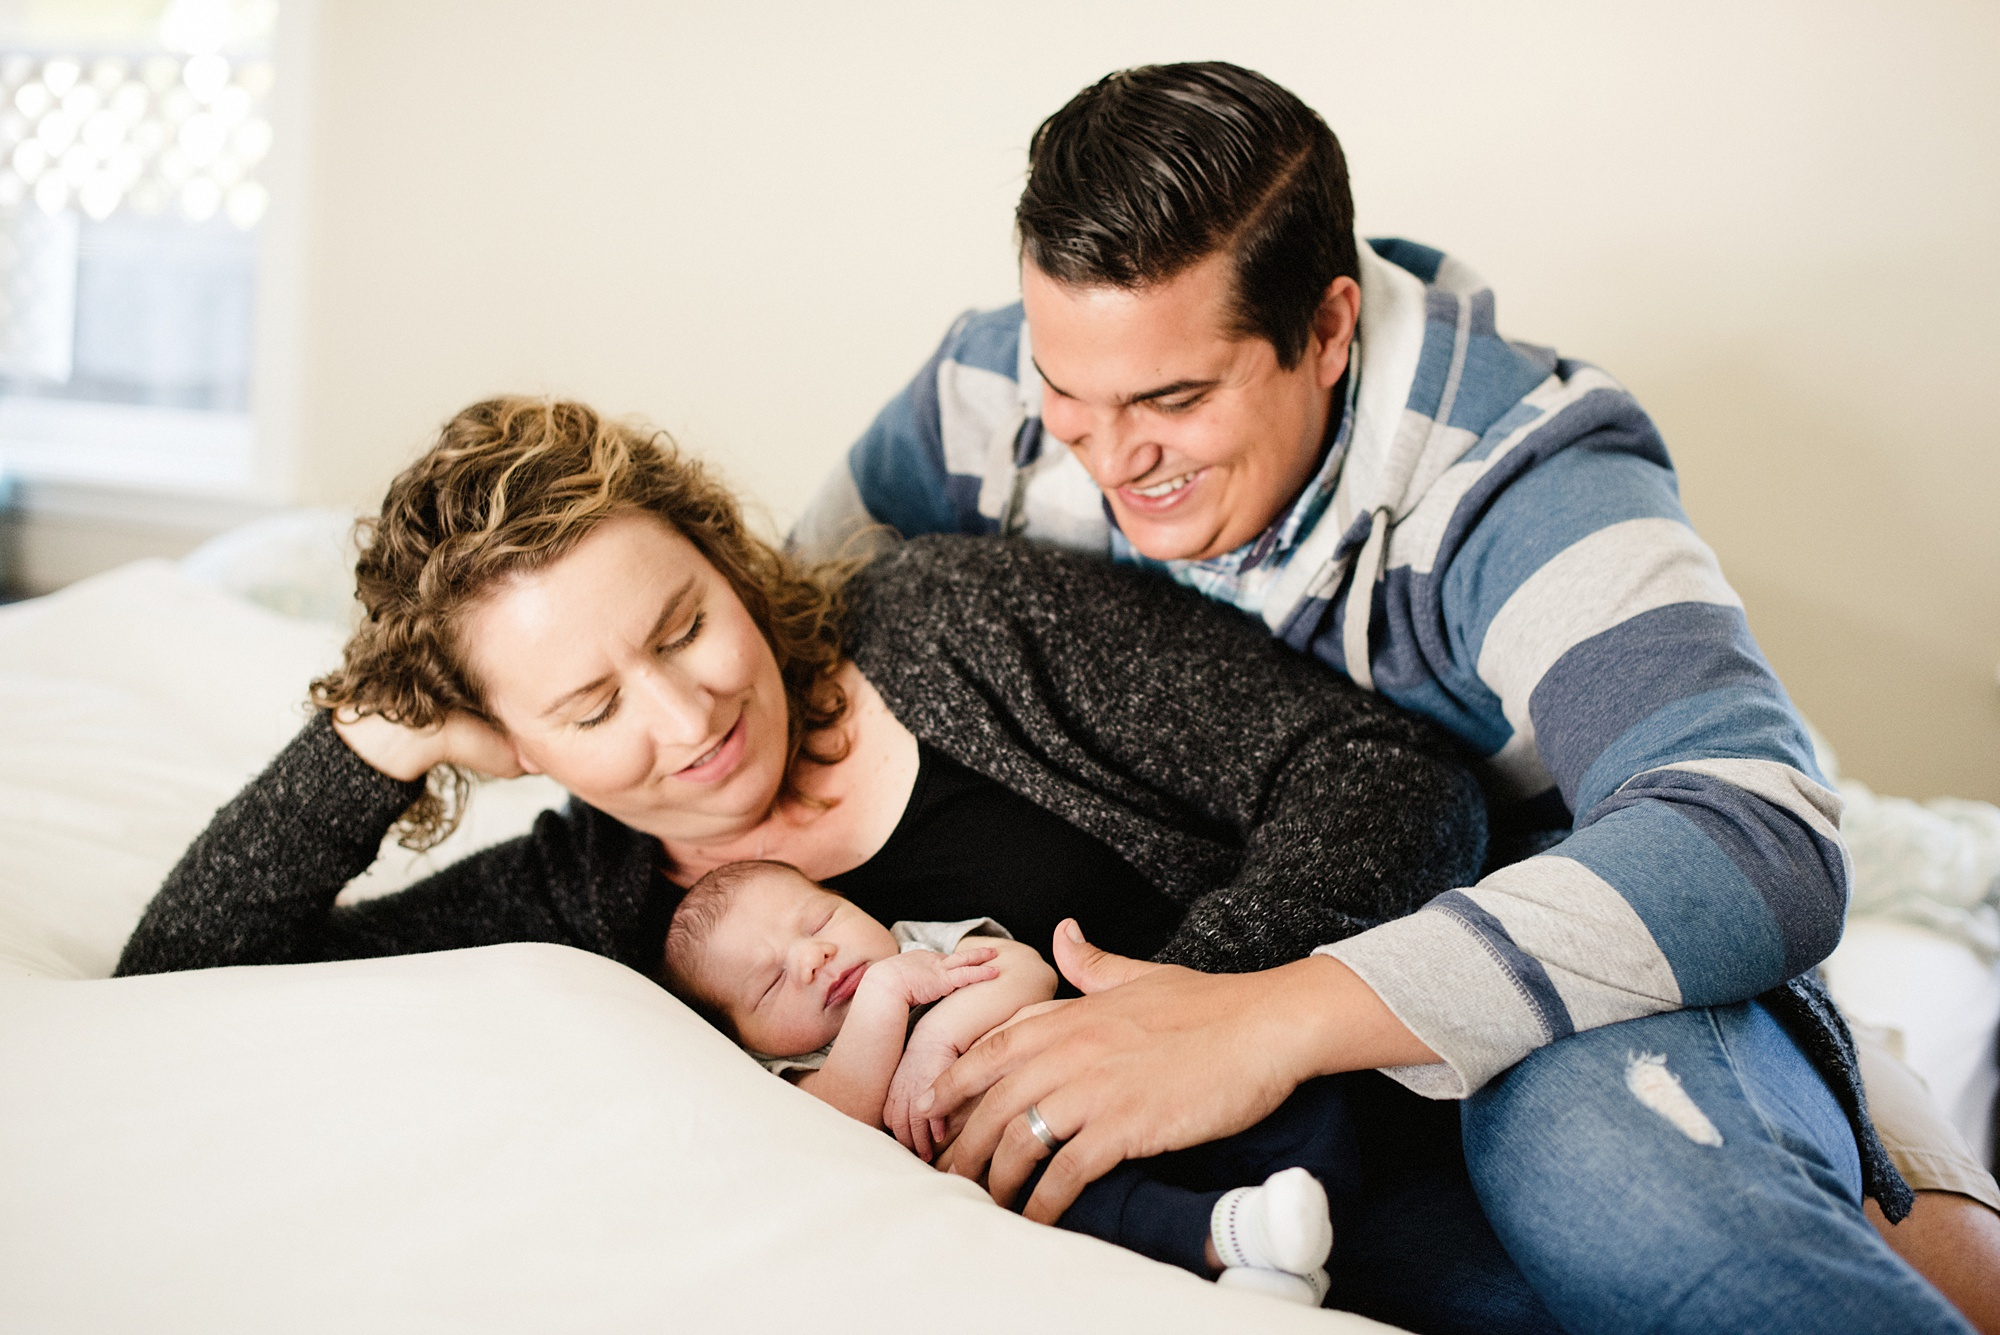 San Jose Family Photographer - Sarah Maren Photography